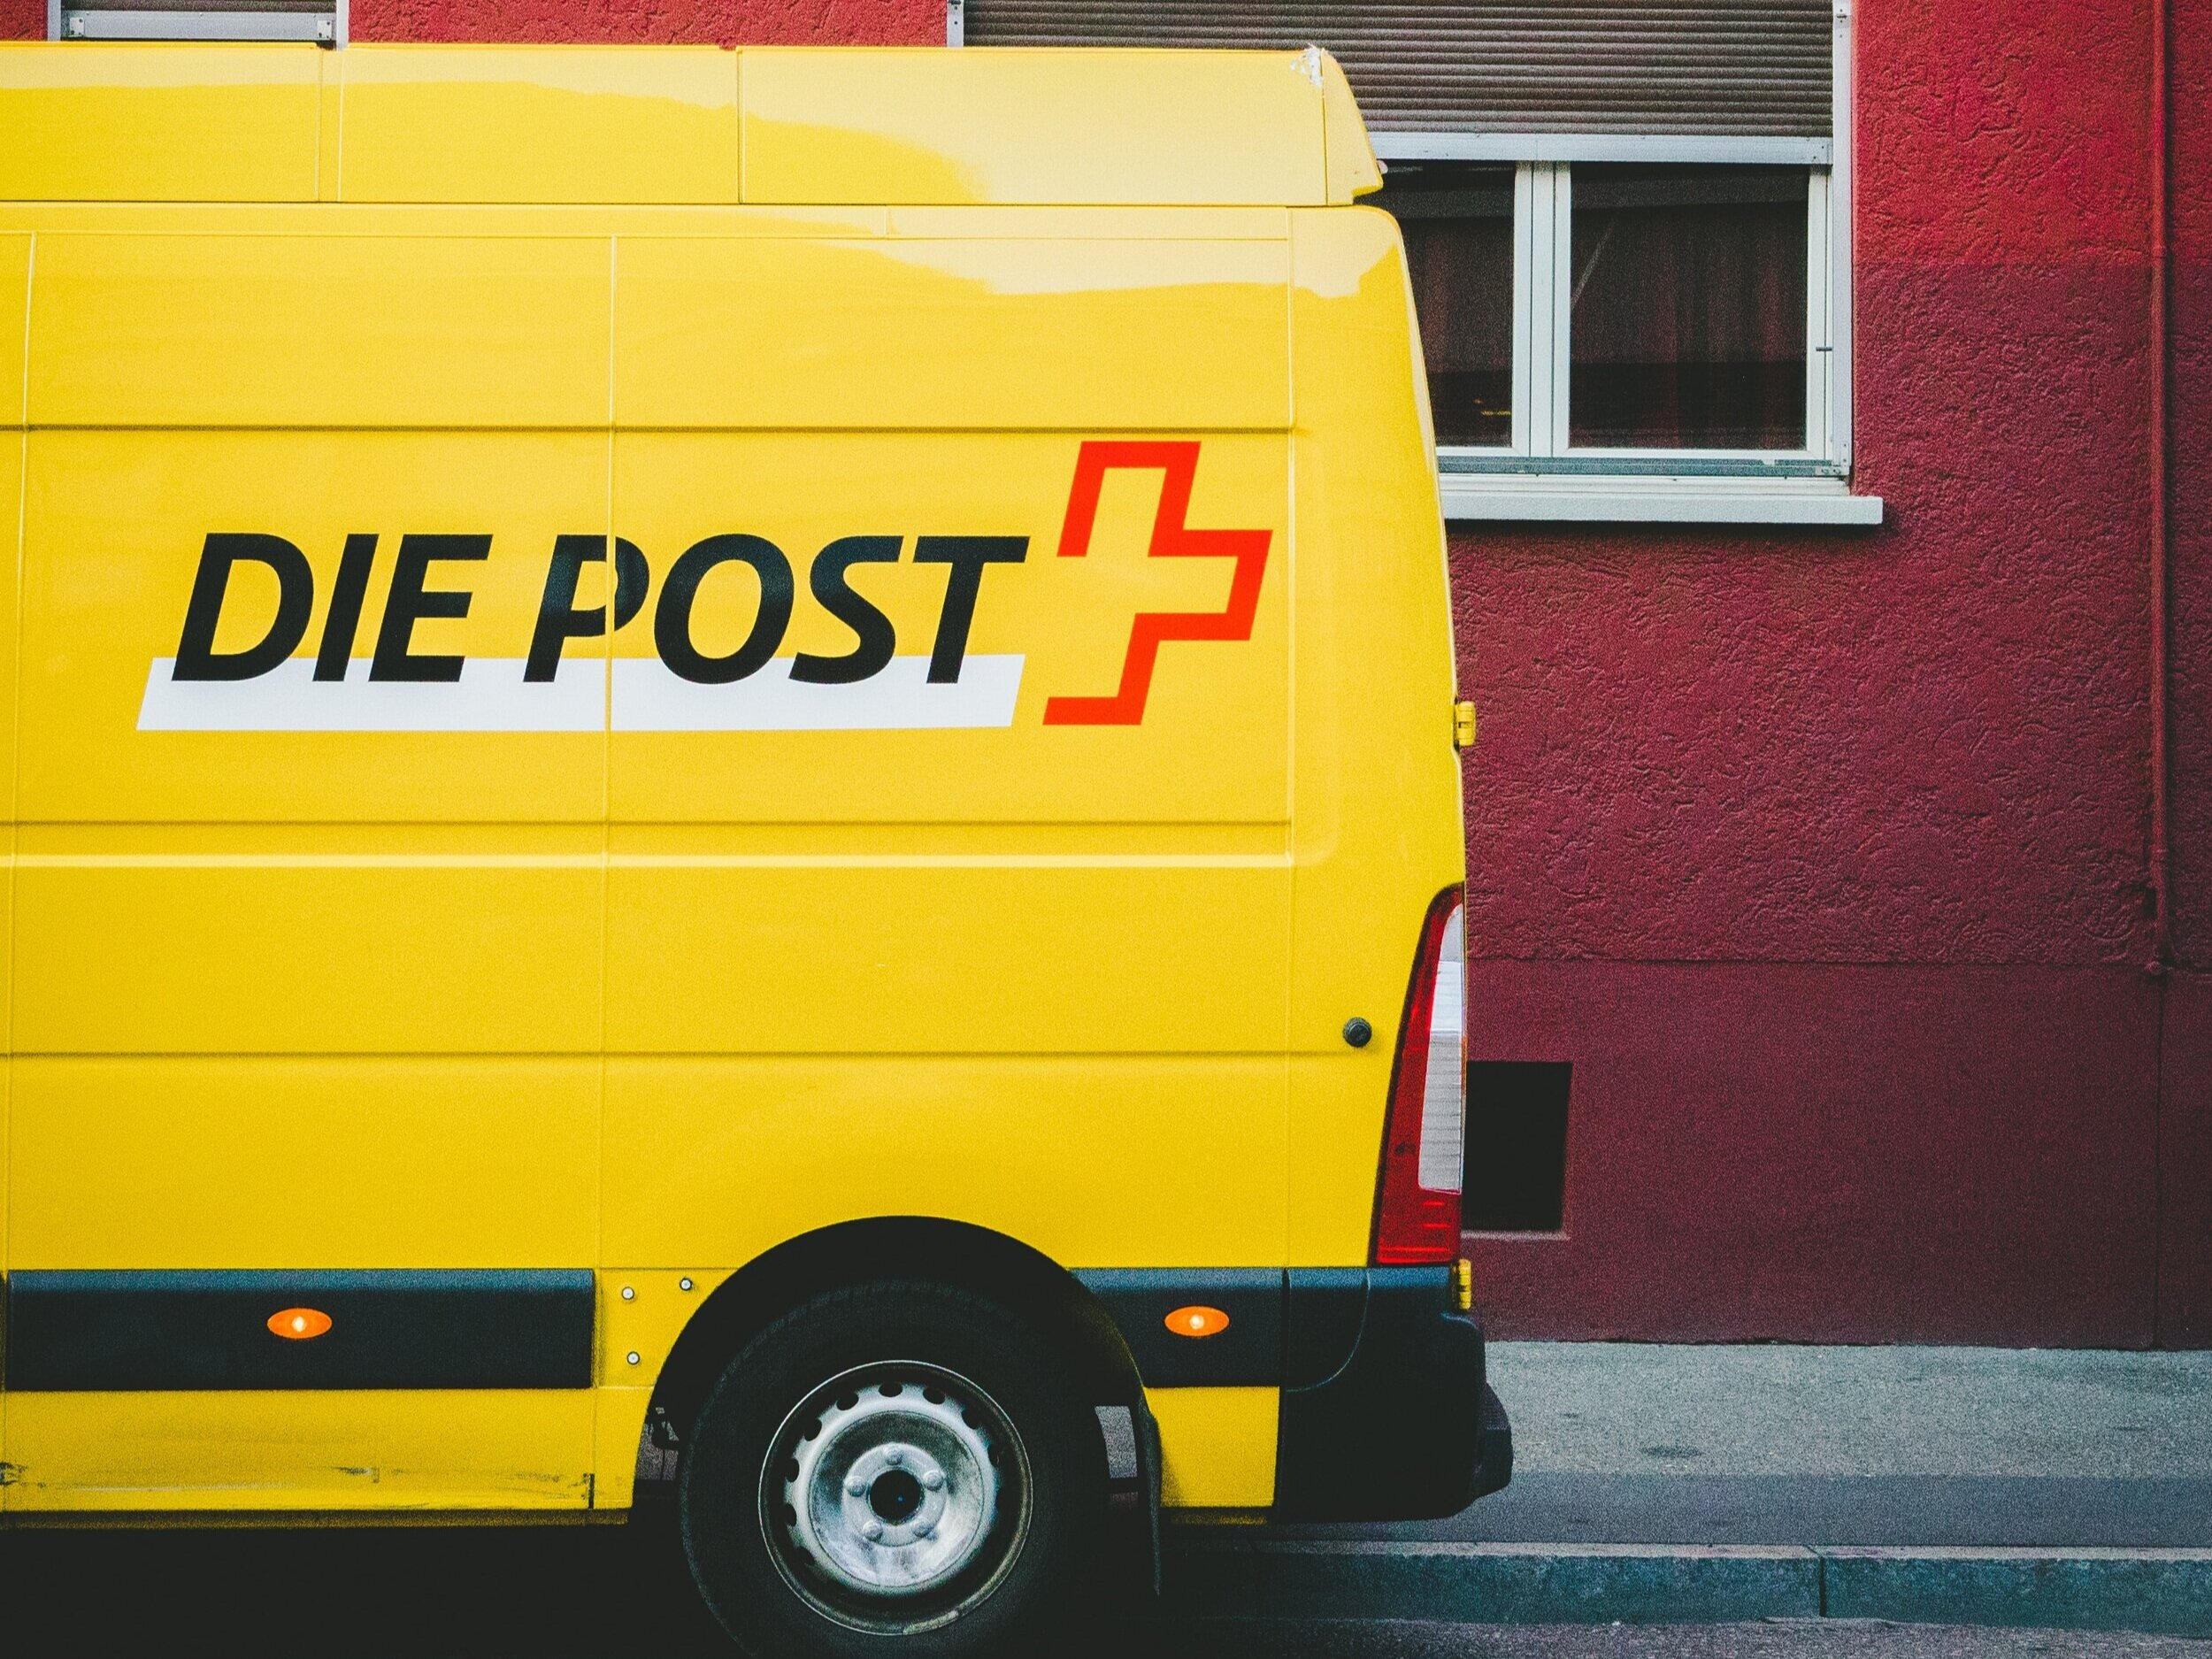 European Shipping - We're able to ship to EU countries using Royal Mail International Standard postage. Deliveries usually take between 3-5 working days.Royal Mail International Standard - from £2.65 to £15 depending on weight